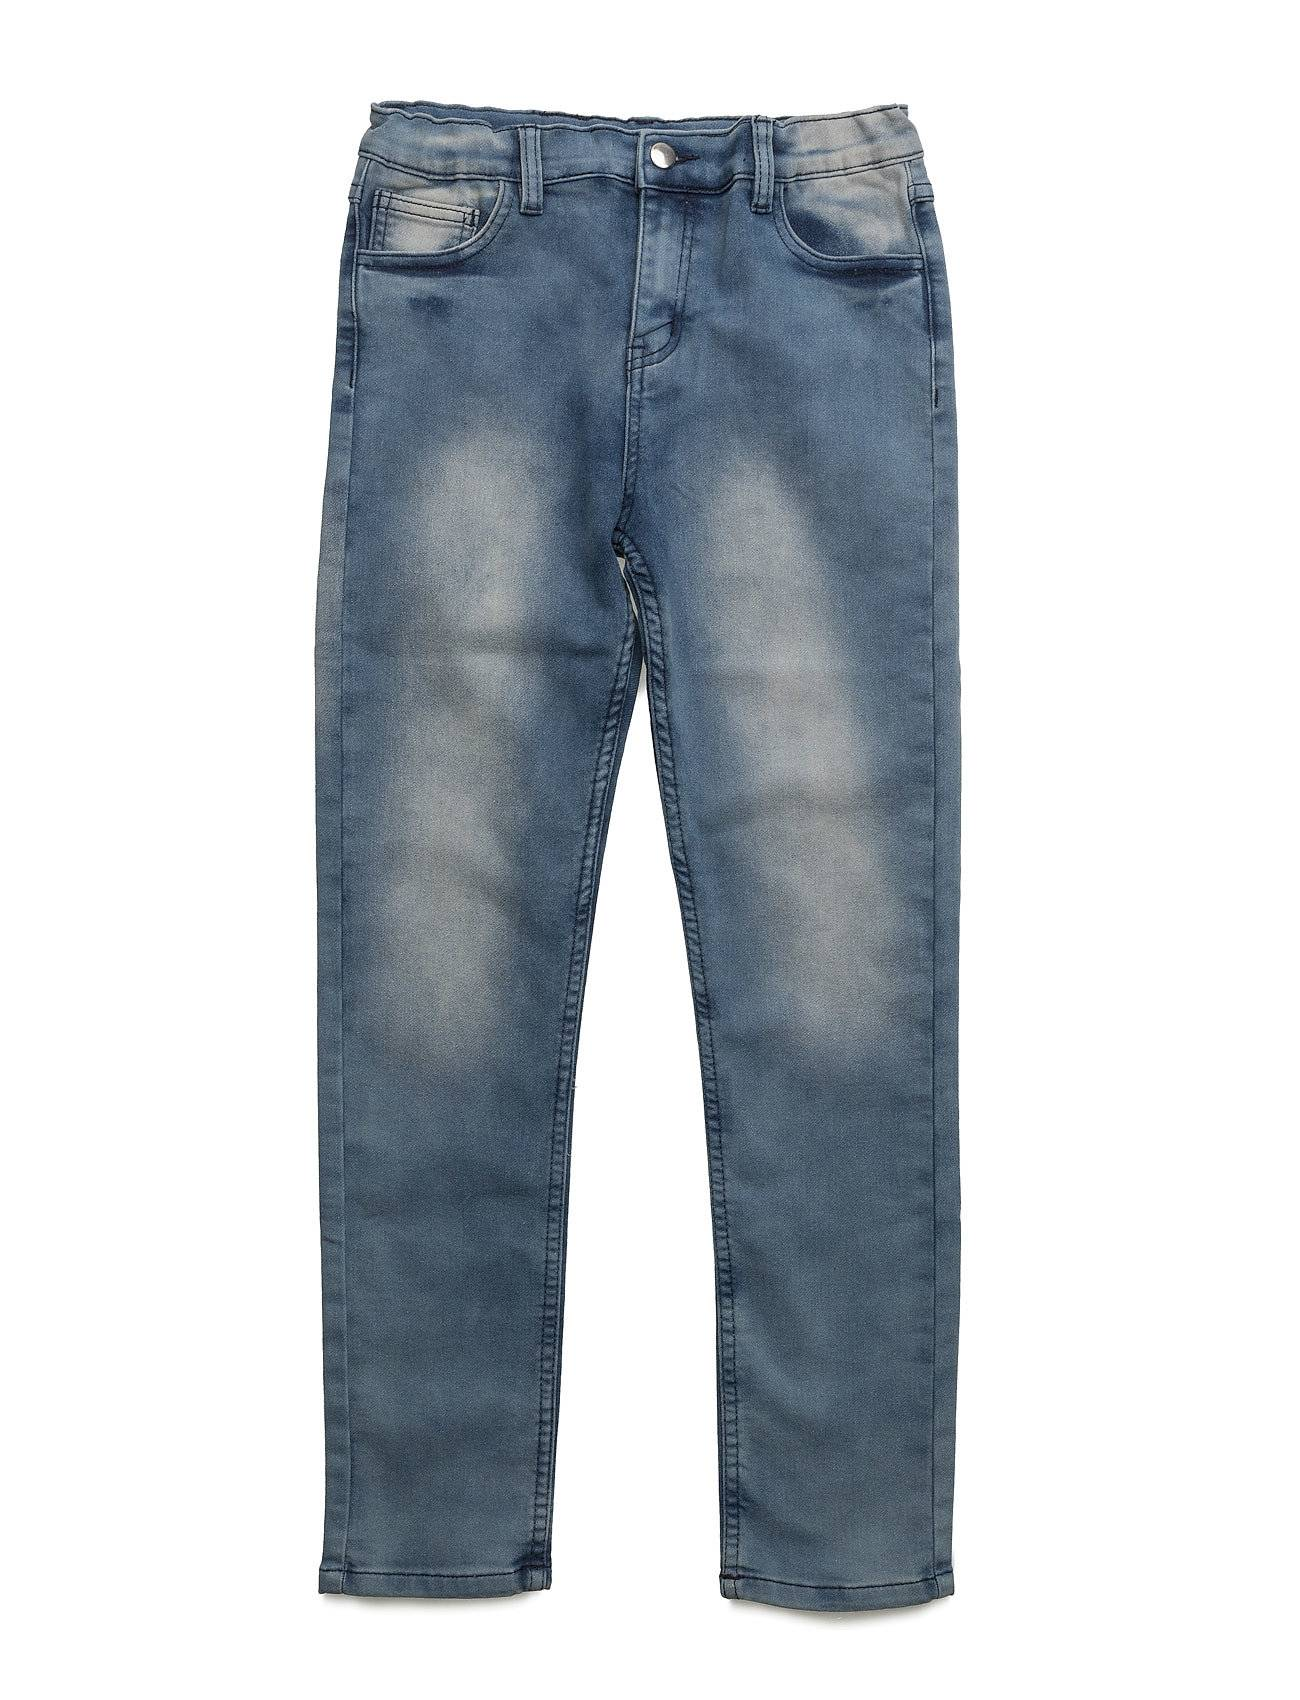 NOVA STAR Tapered Denim Light